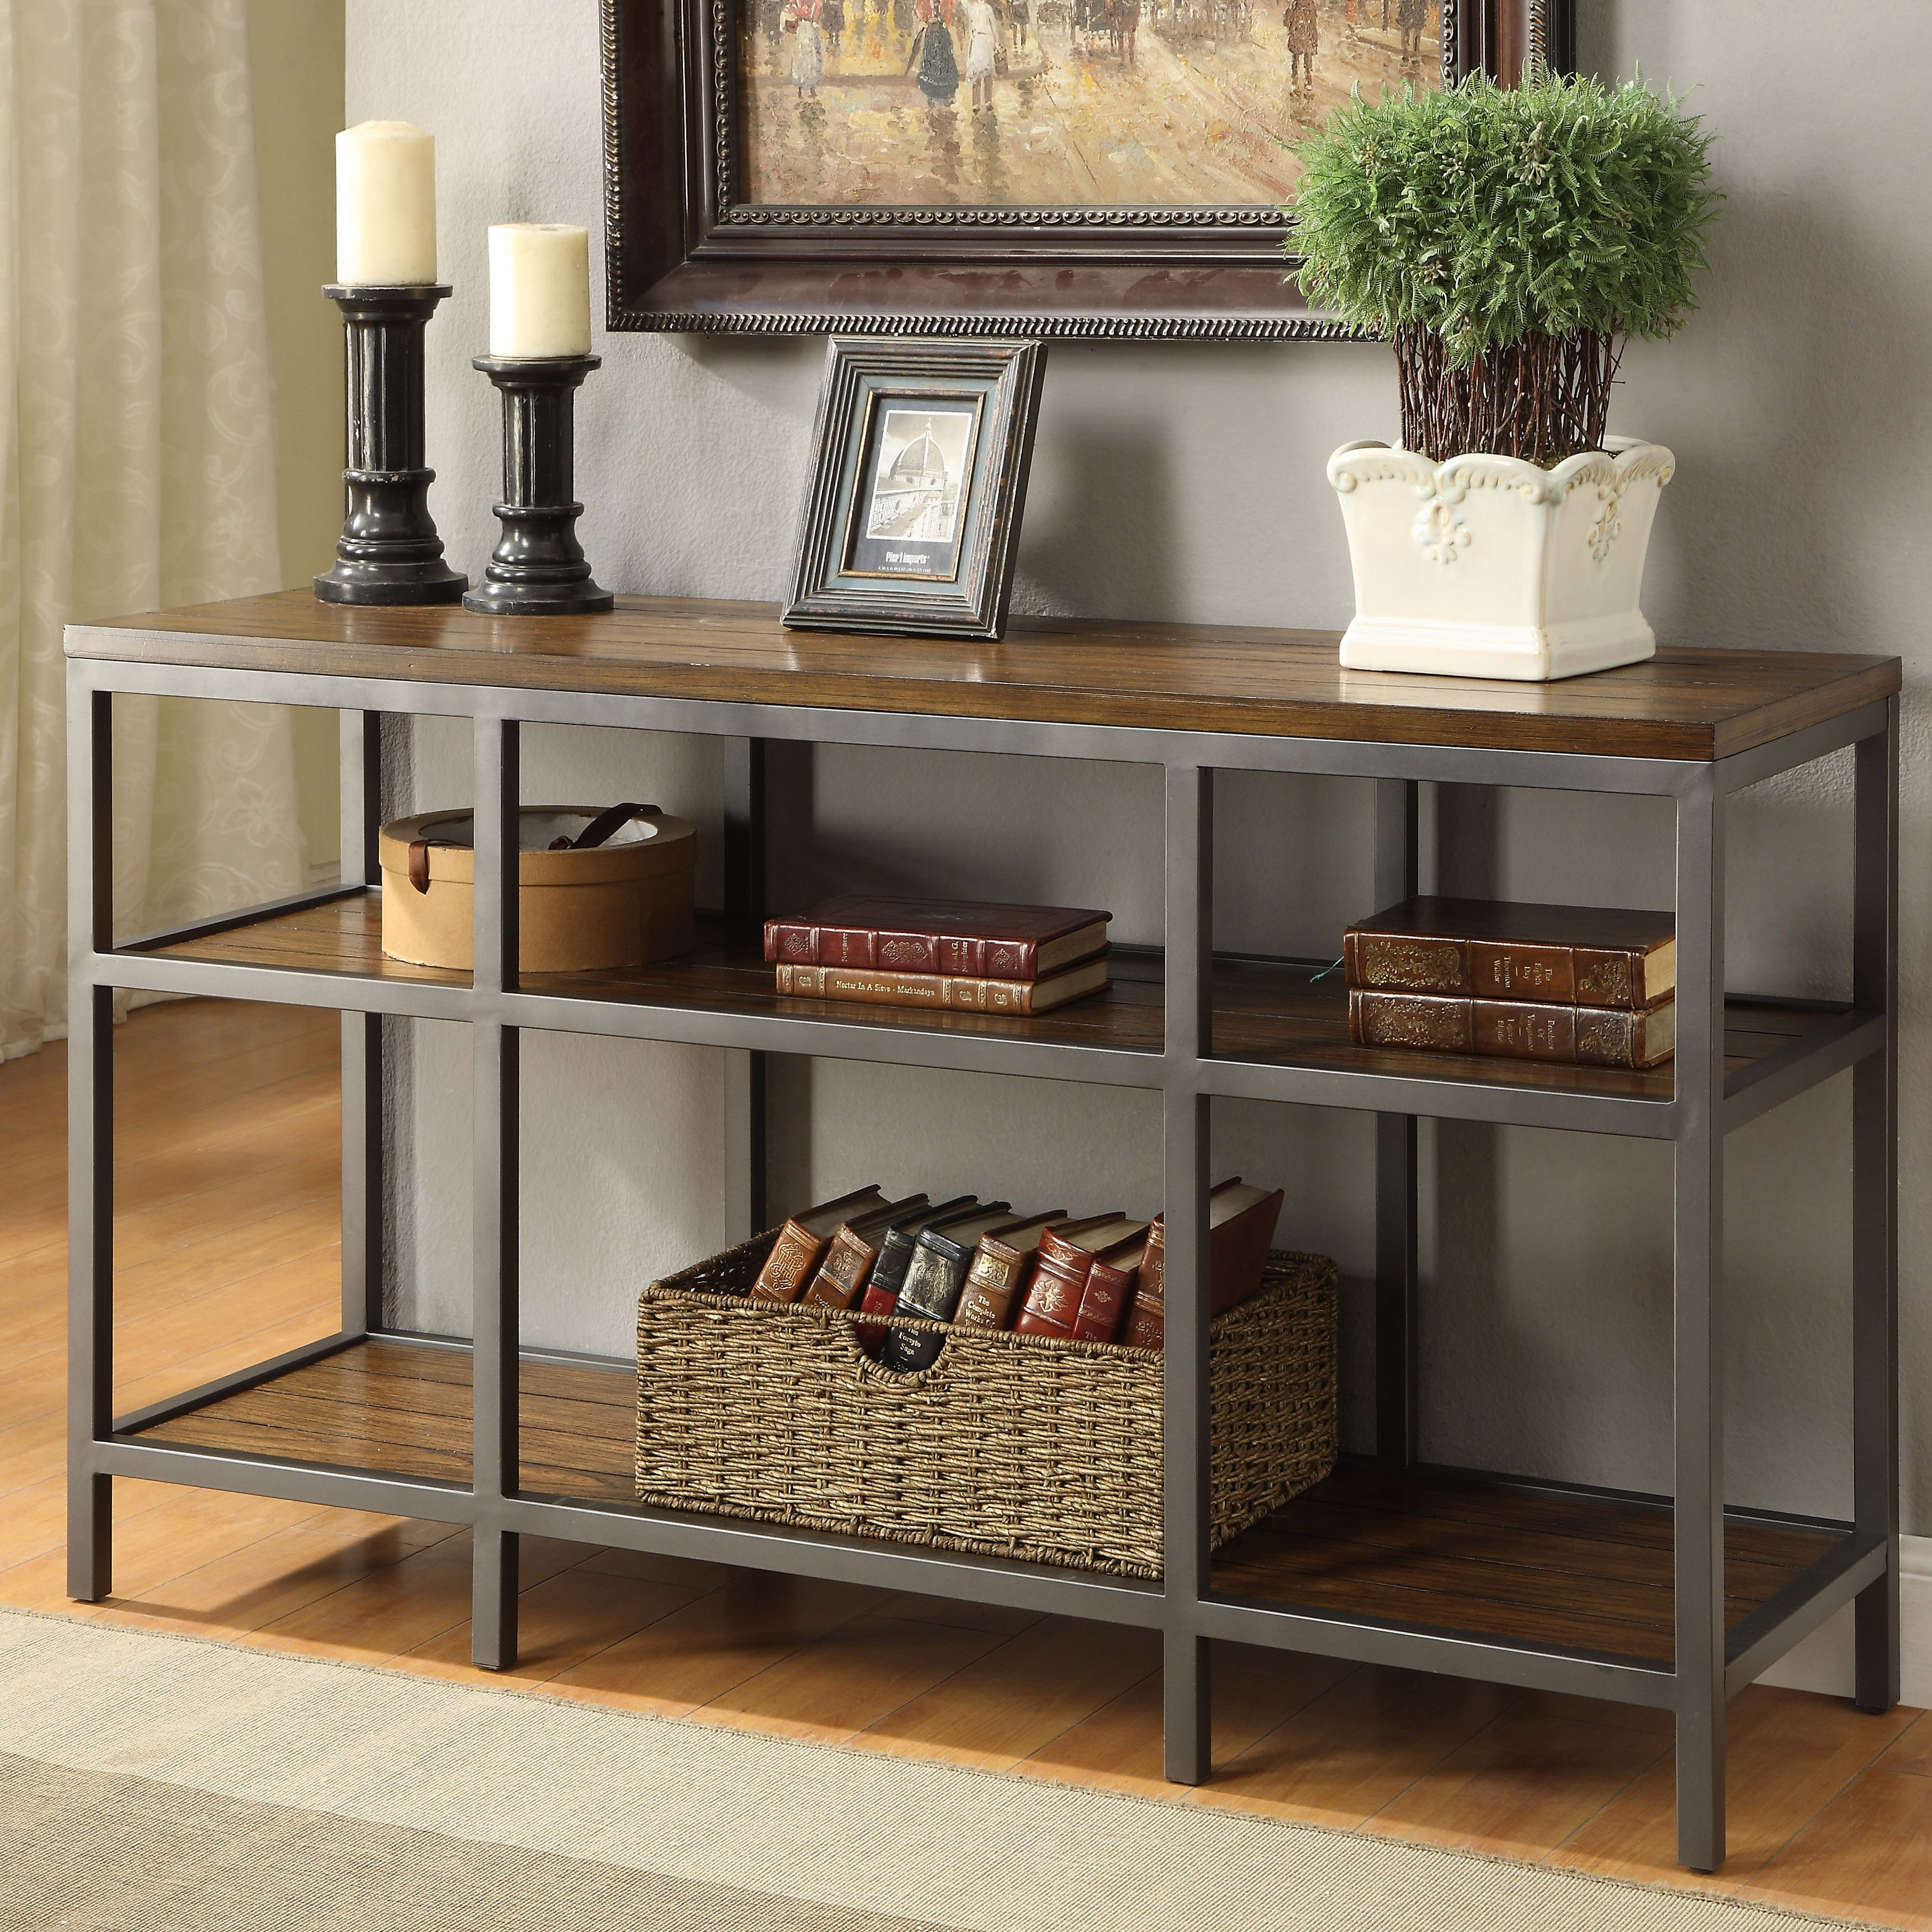 Small Industrial Side Table Charmingly Designed With An Industrial Style In Mind This